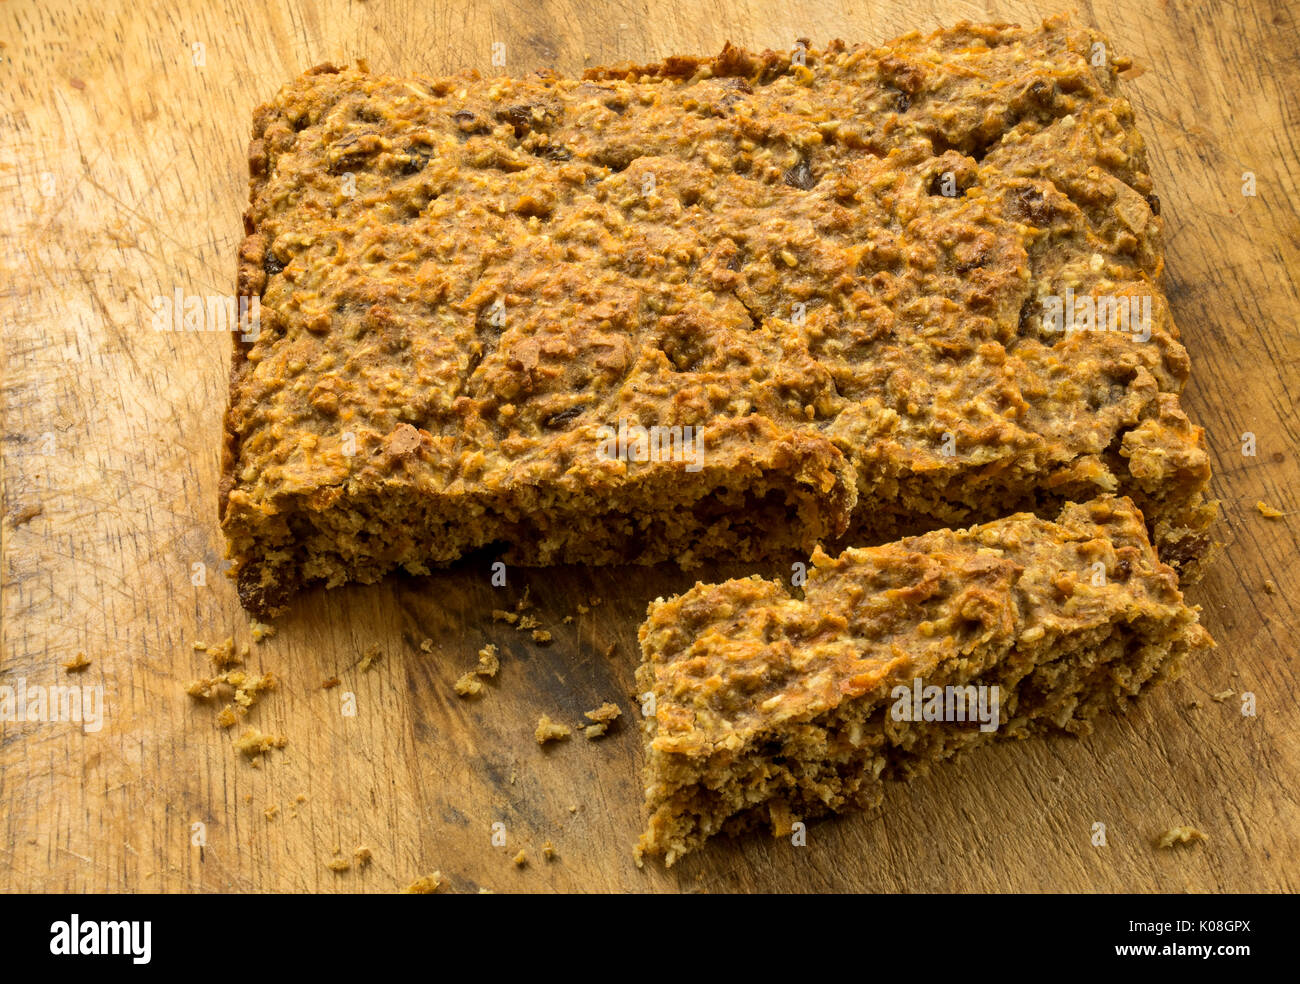 This home cooked cake is a wholesome, healthy snack - Stock Image